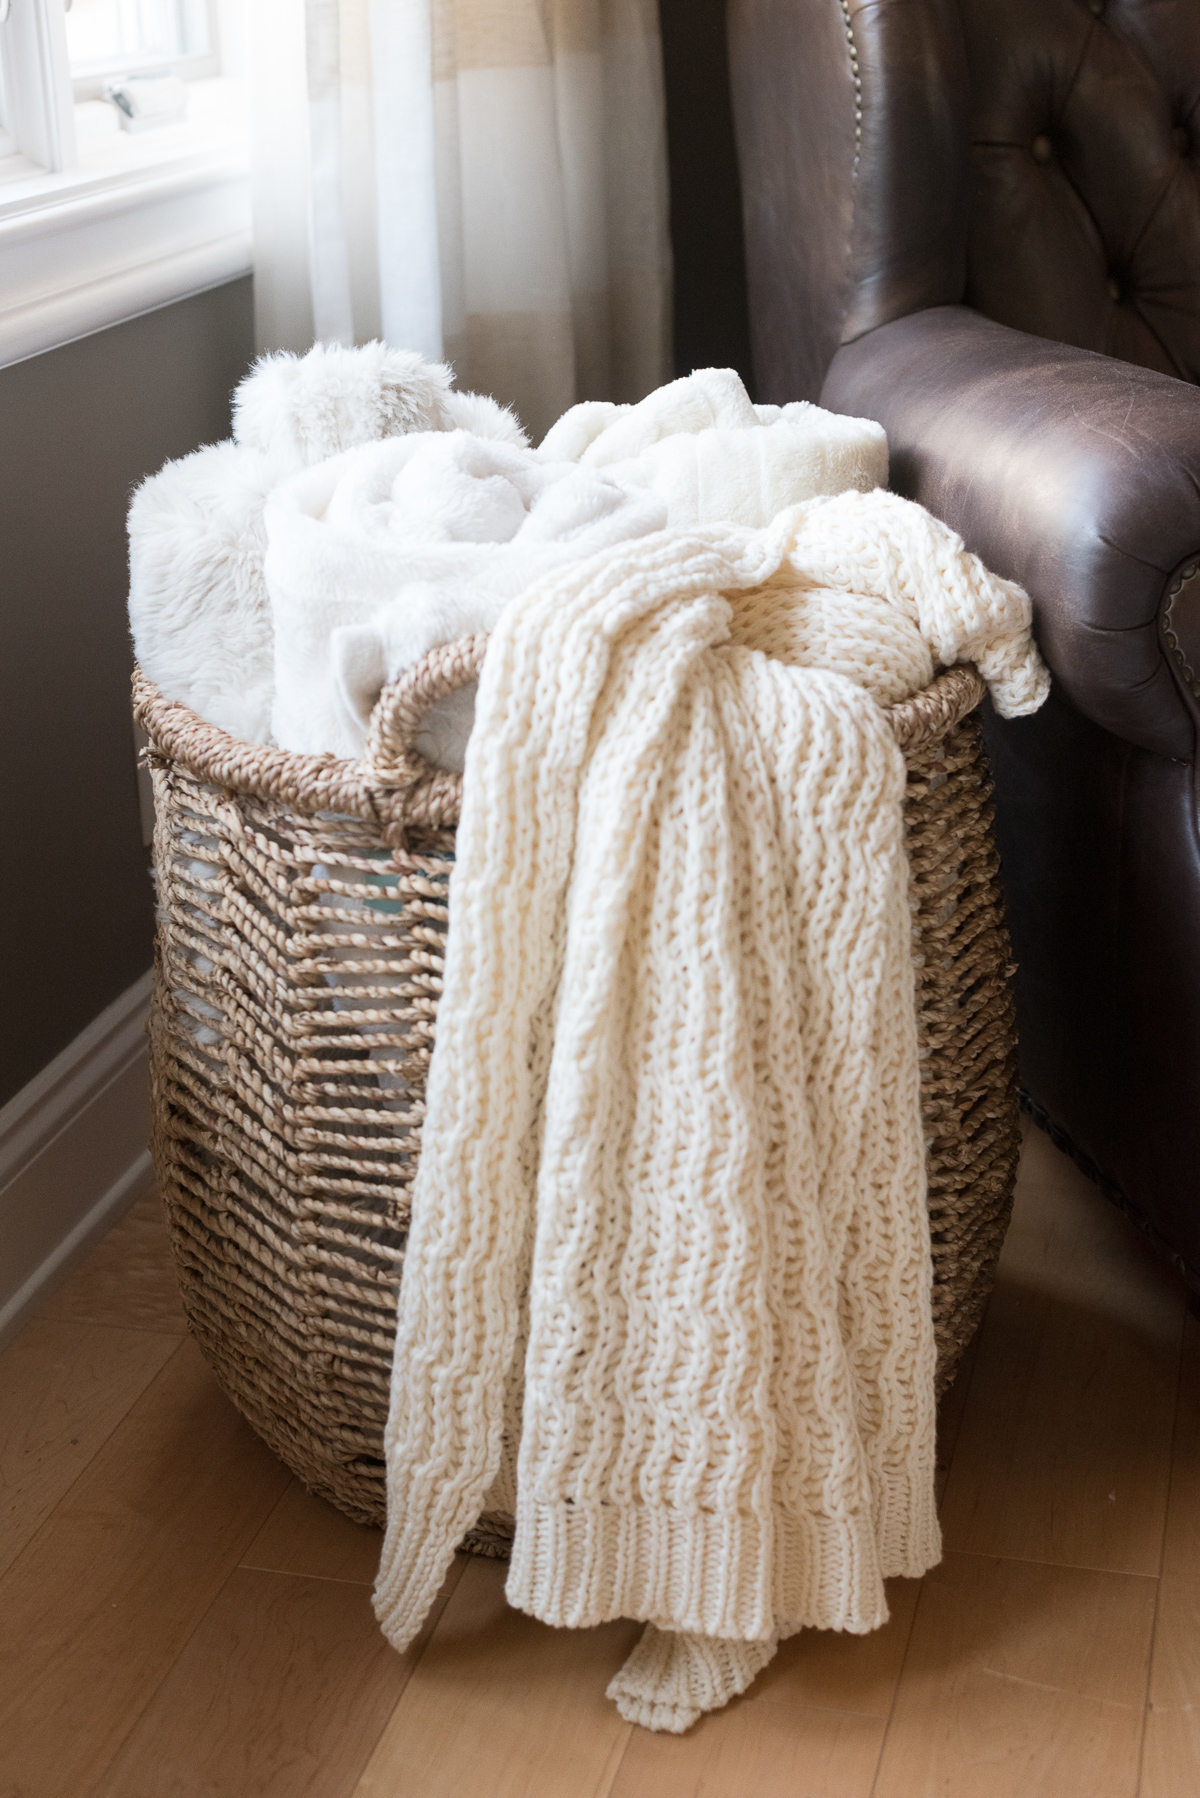 GTT: How To Make Your Home Feel Cozier